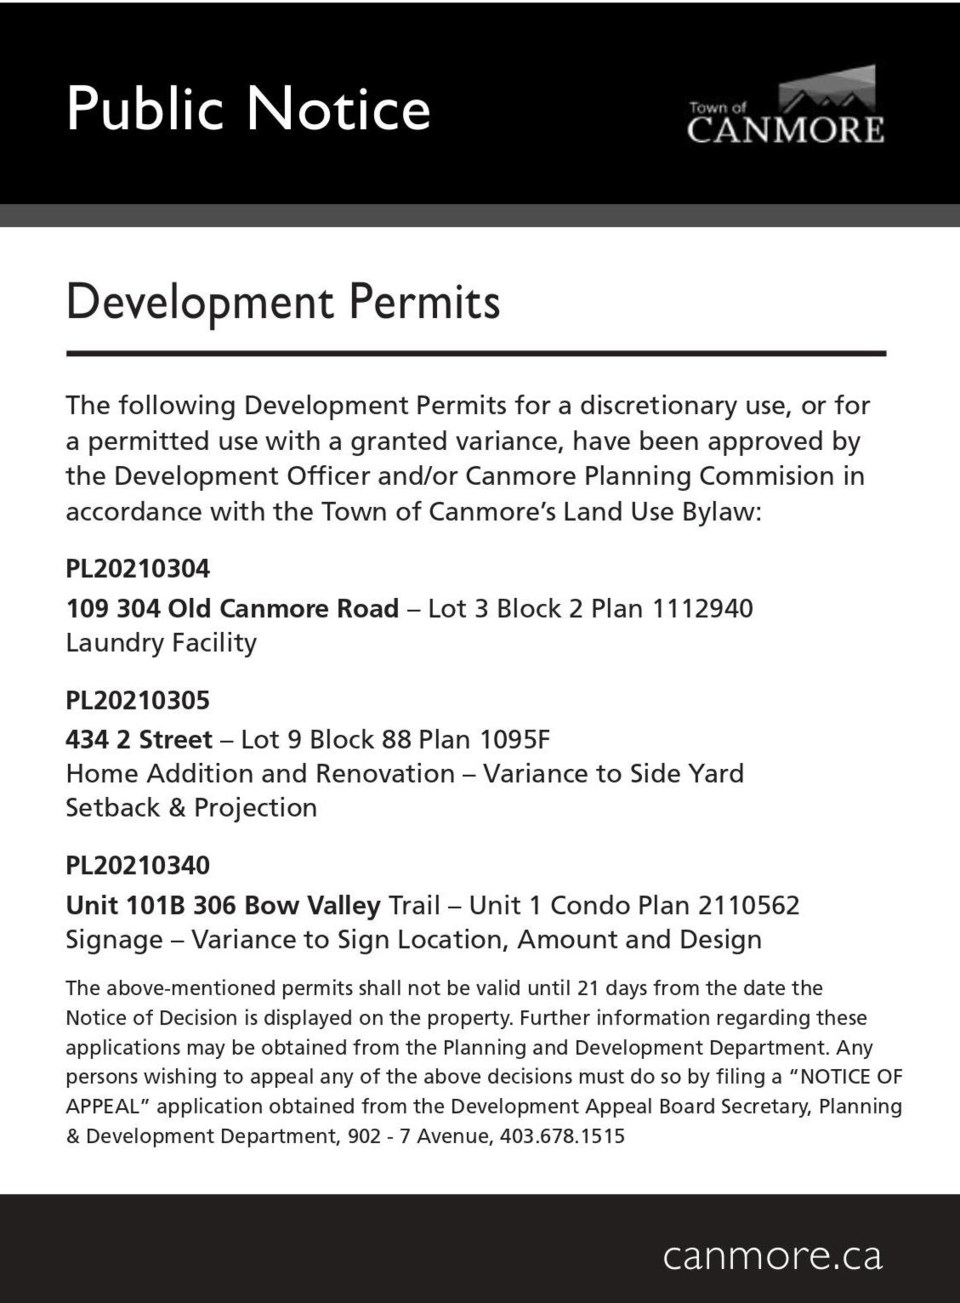 PUBLIC NOTICE – Town of Canmore - development permits